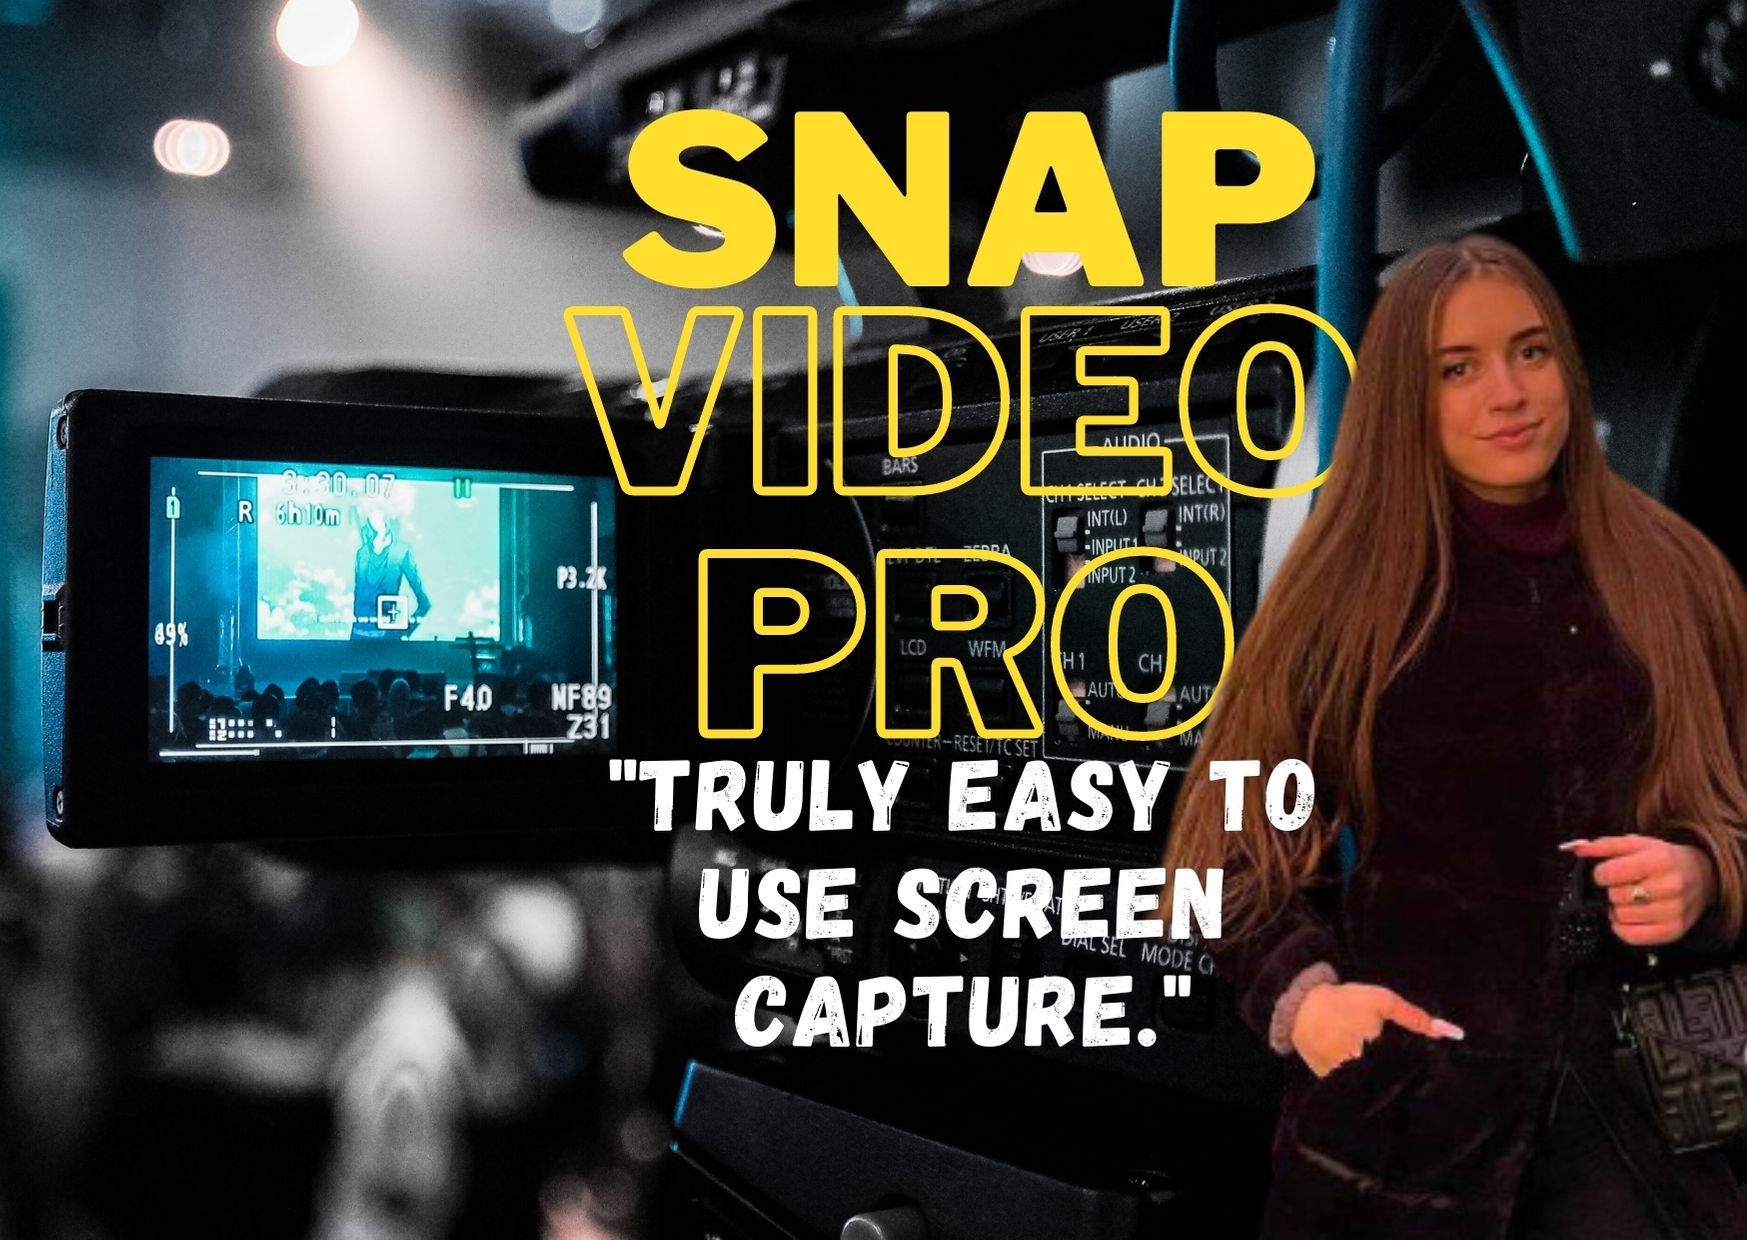 Snap Video Pro easy to use screen capture software